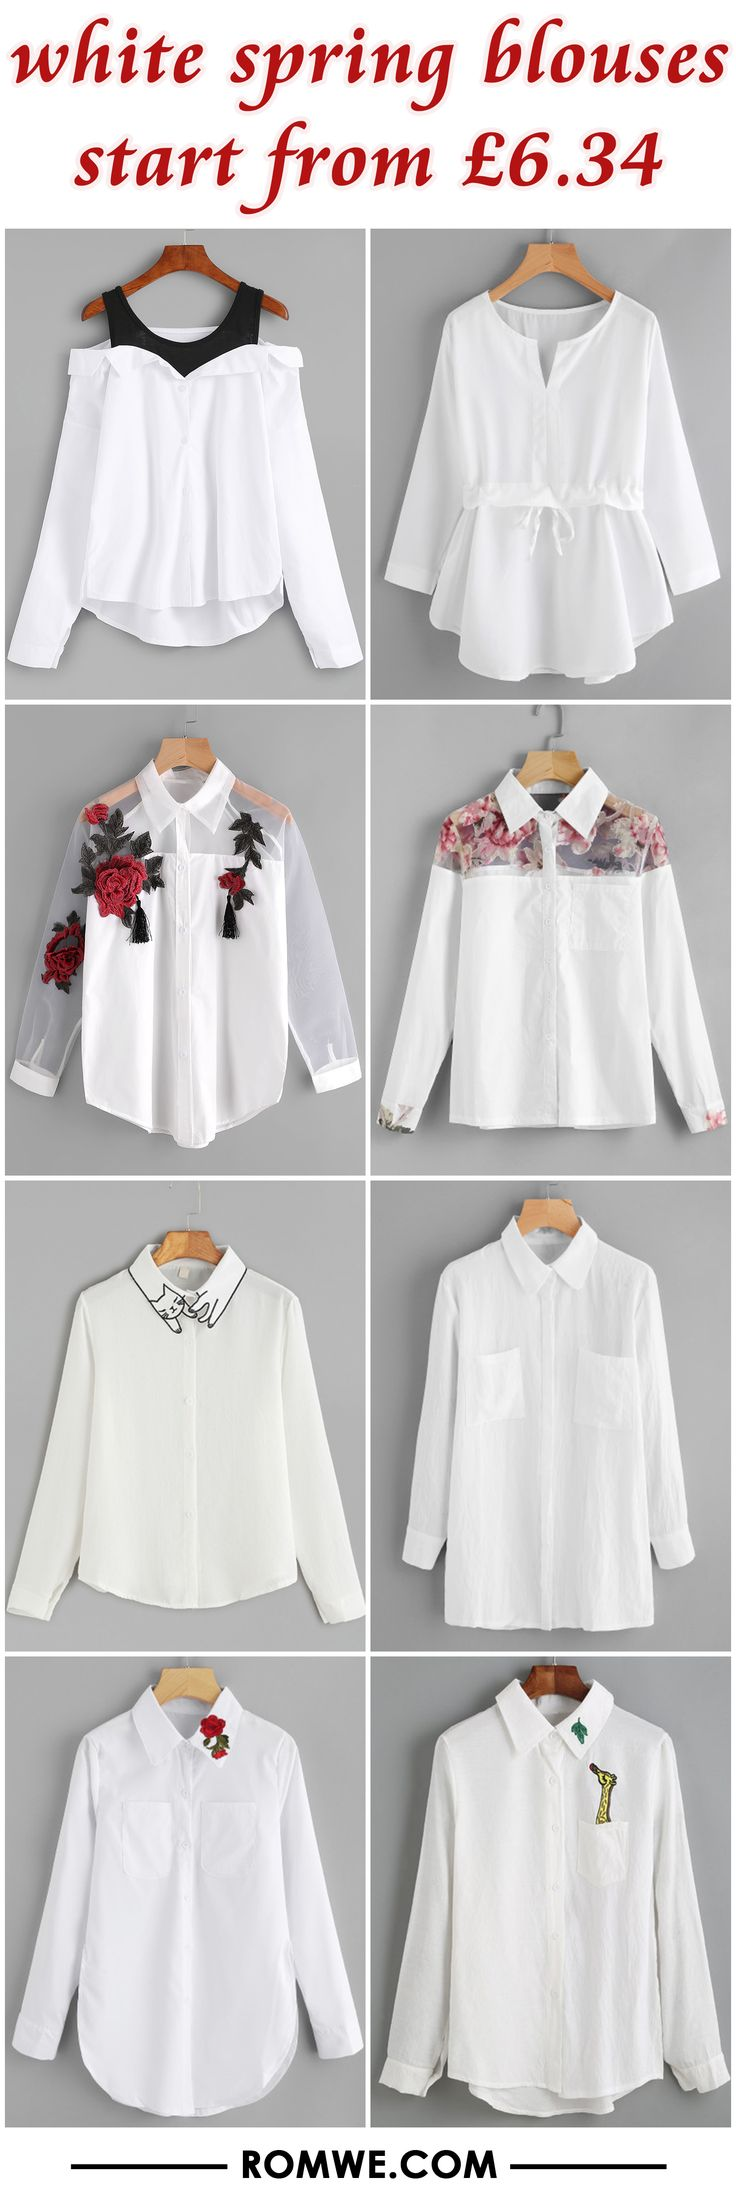 white spring blouses from £6.34